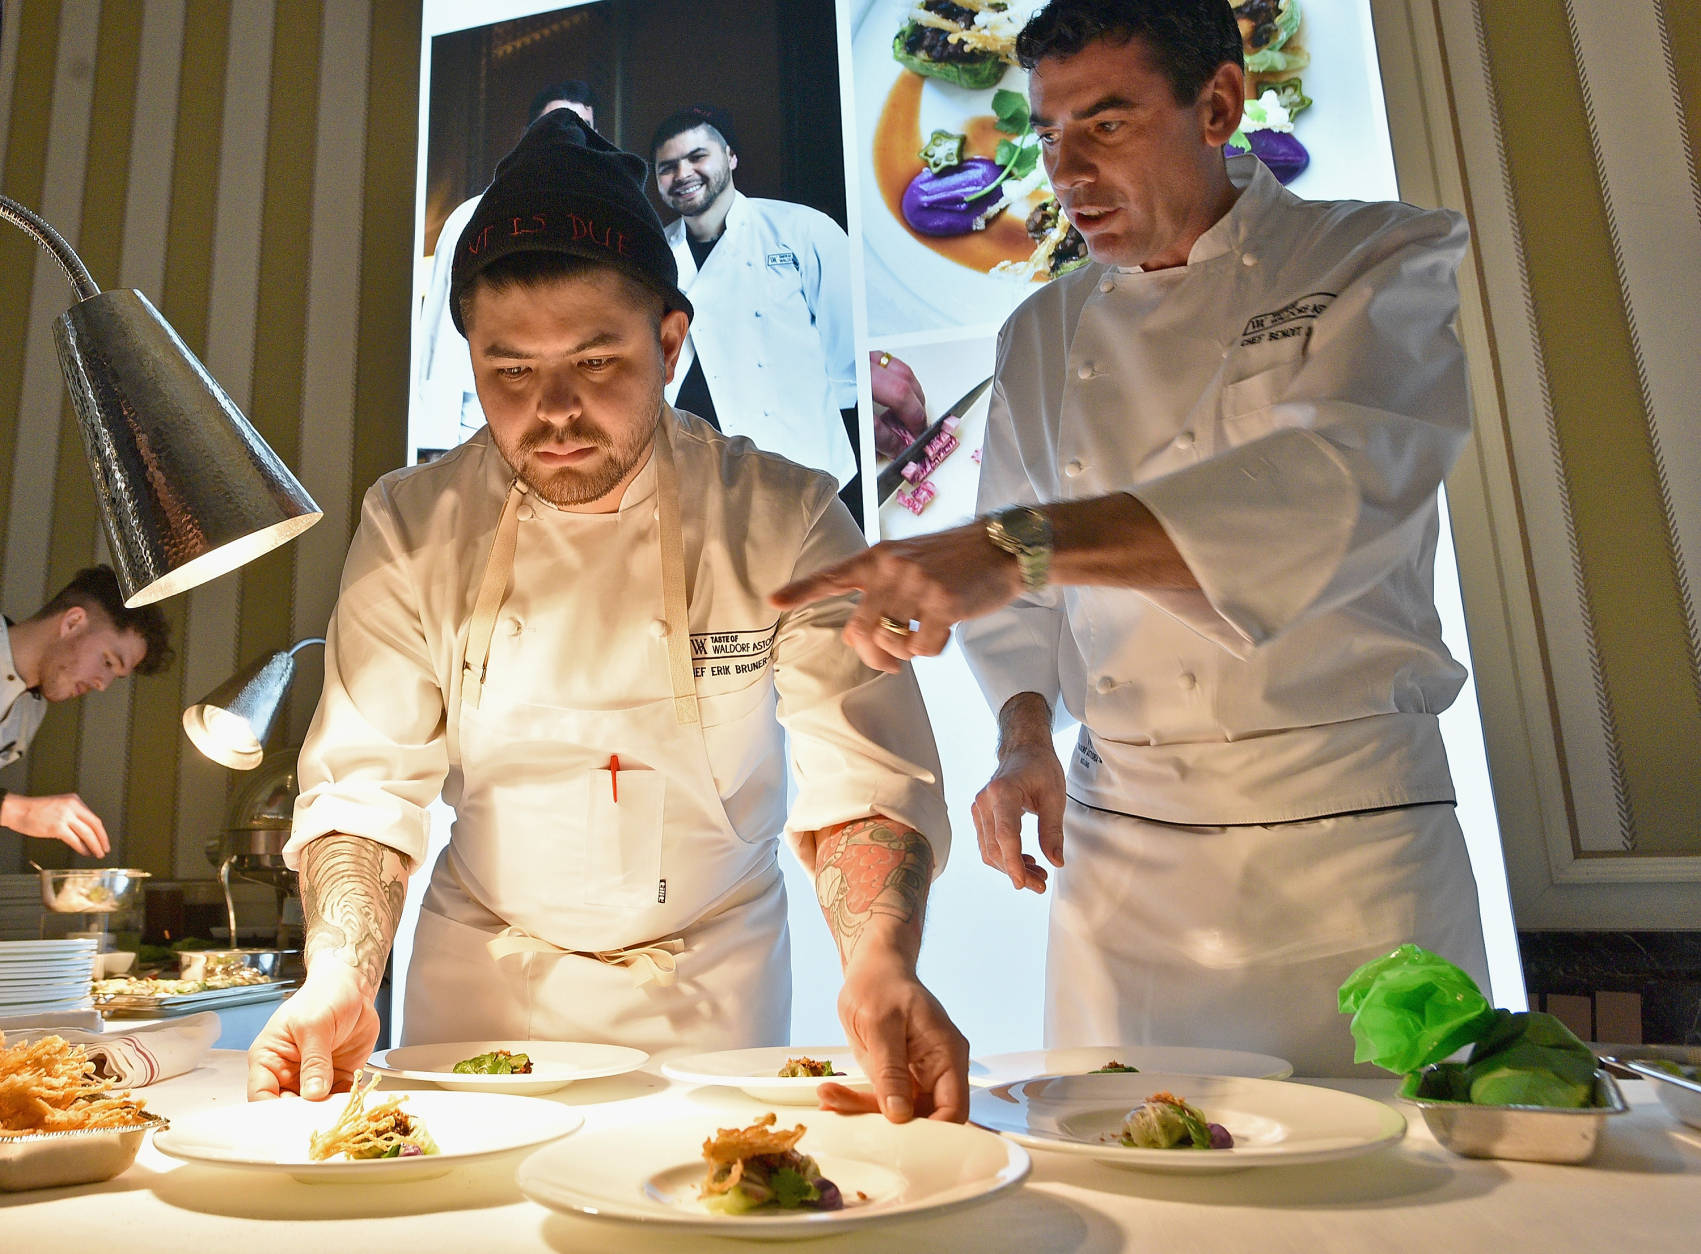 Chefs Erik Bruner-Yang (L) and Benoit Chargy prepare food during Taste of Waldorf Astoria at Waldorf Astoria Hotel on February 23, 2016 in New York City.  (Photo by Bryan Bedder/Getty Images for Waldorf Astoria Hotels & Resorts)